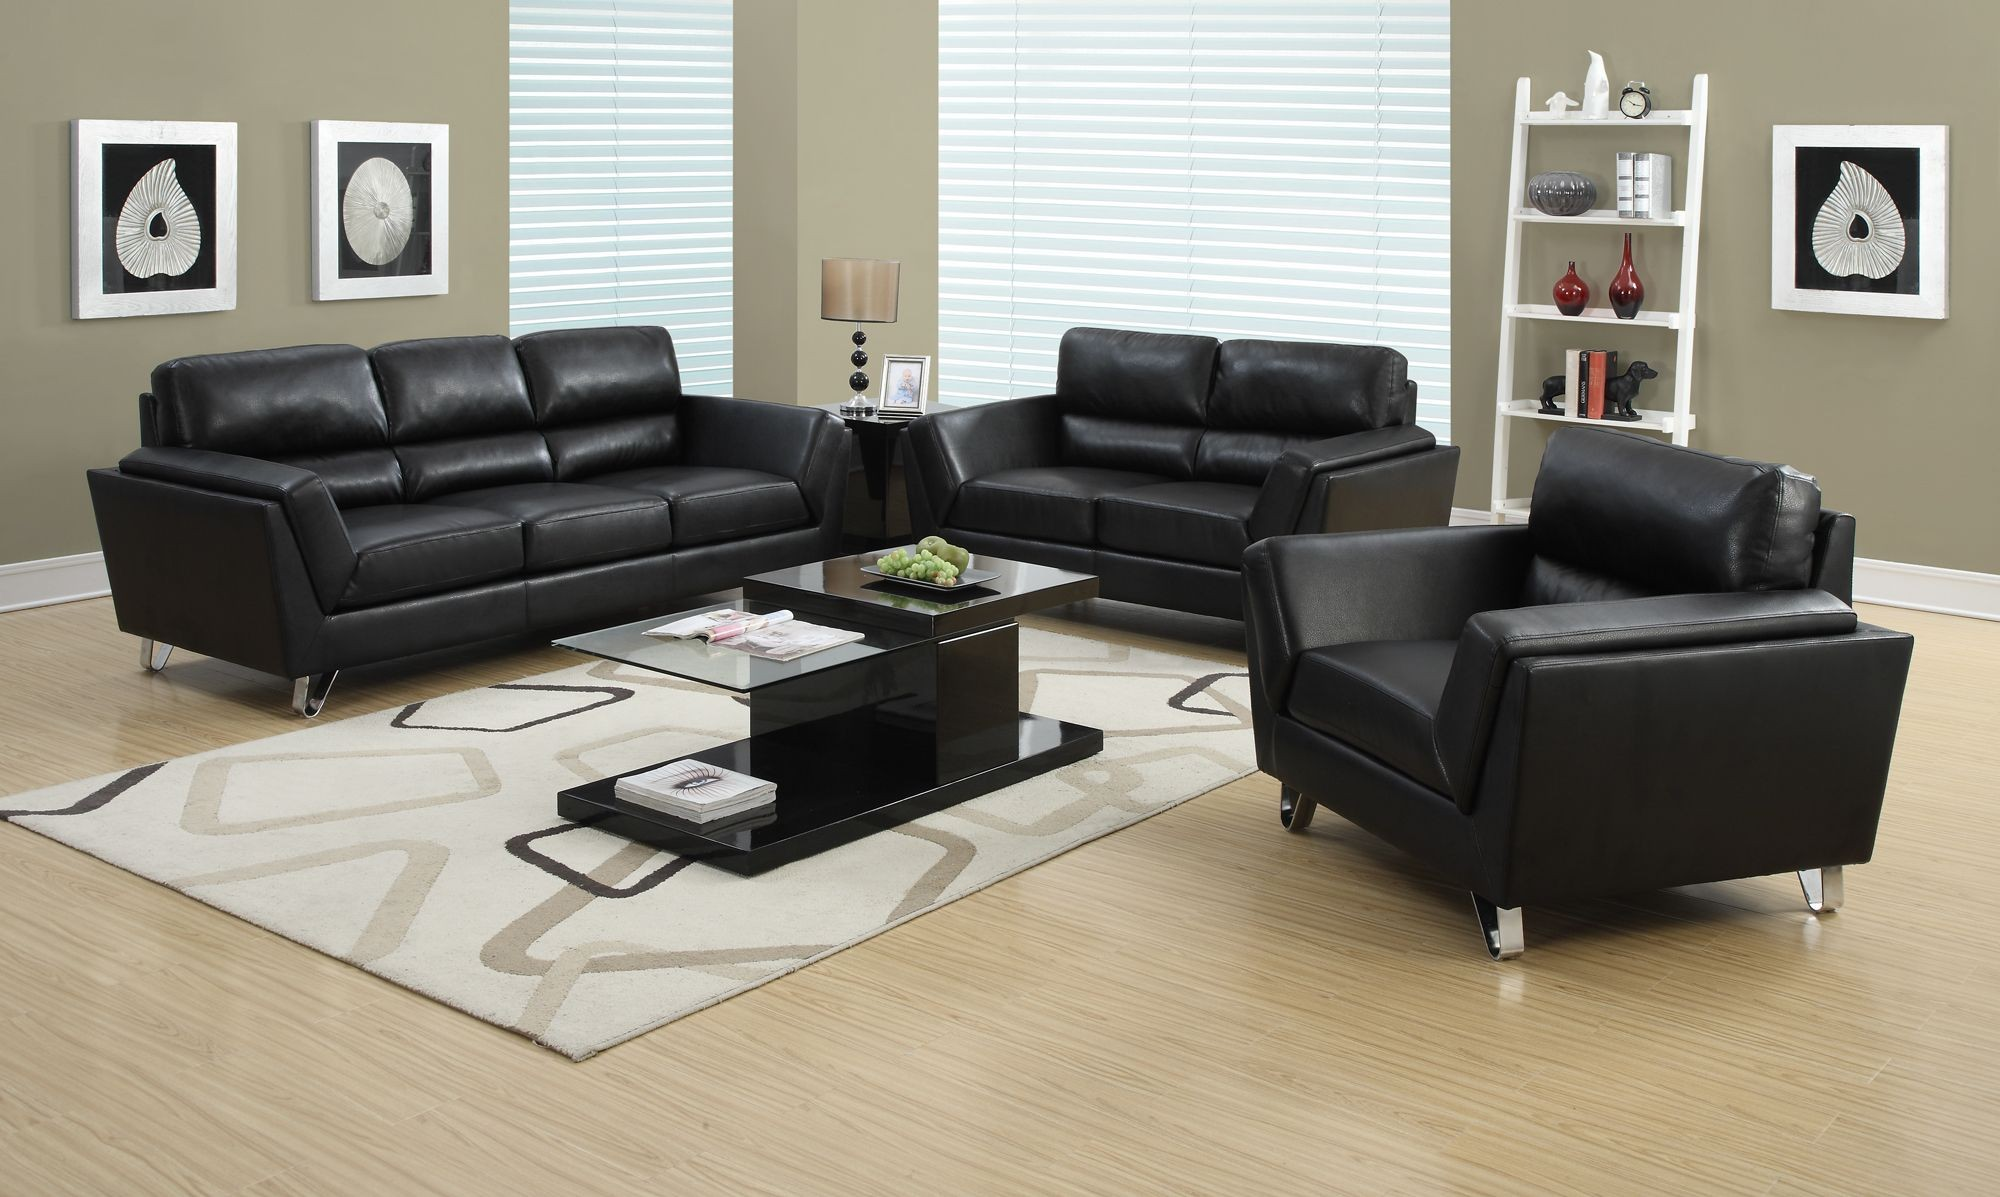 Black bonded leather match sofa from monarch 8203bk for 8 piece leather sectional sofa